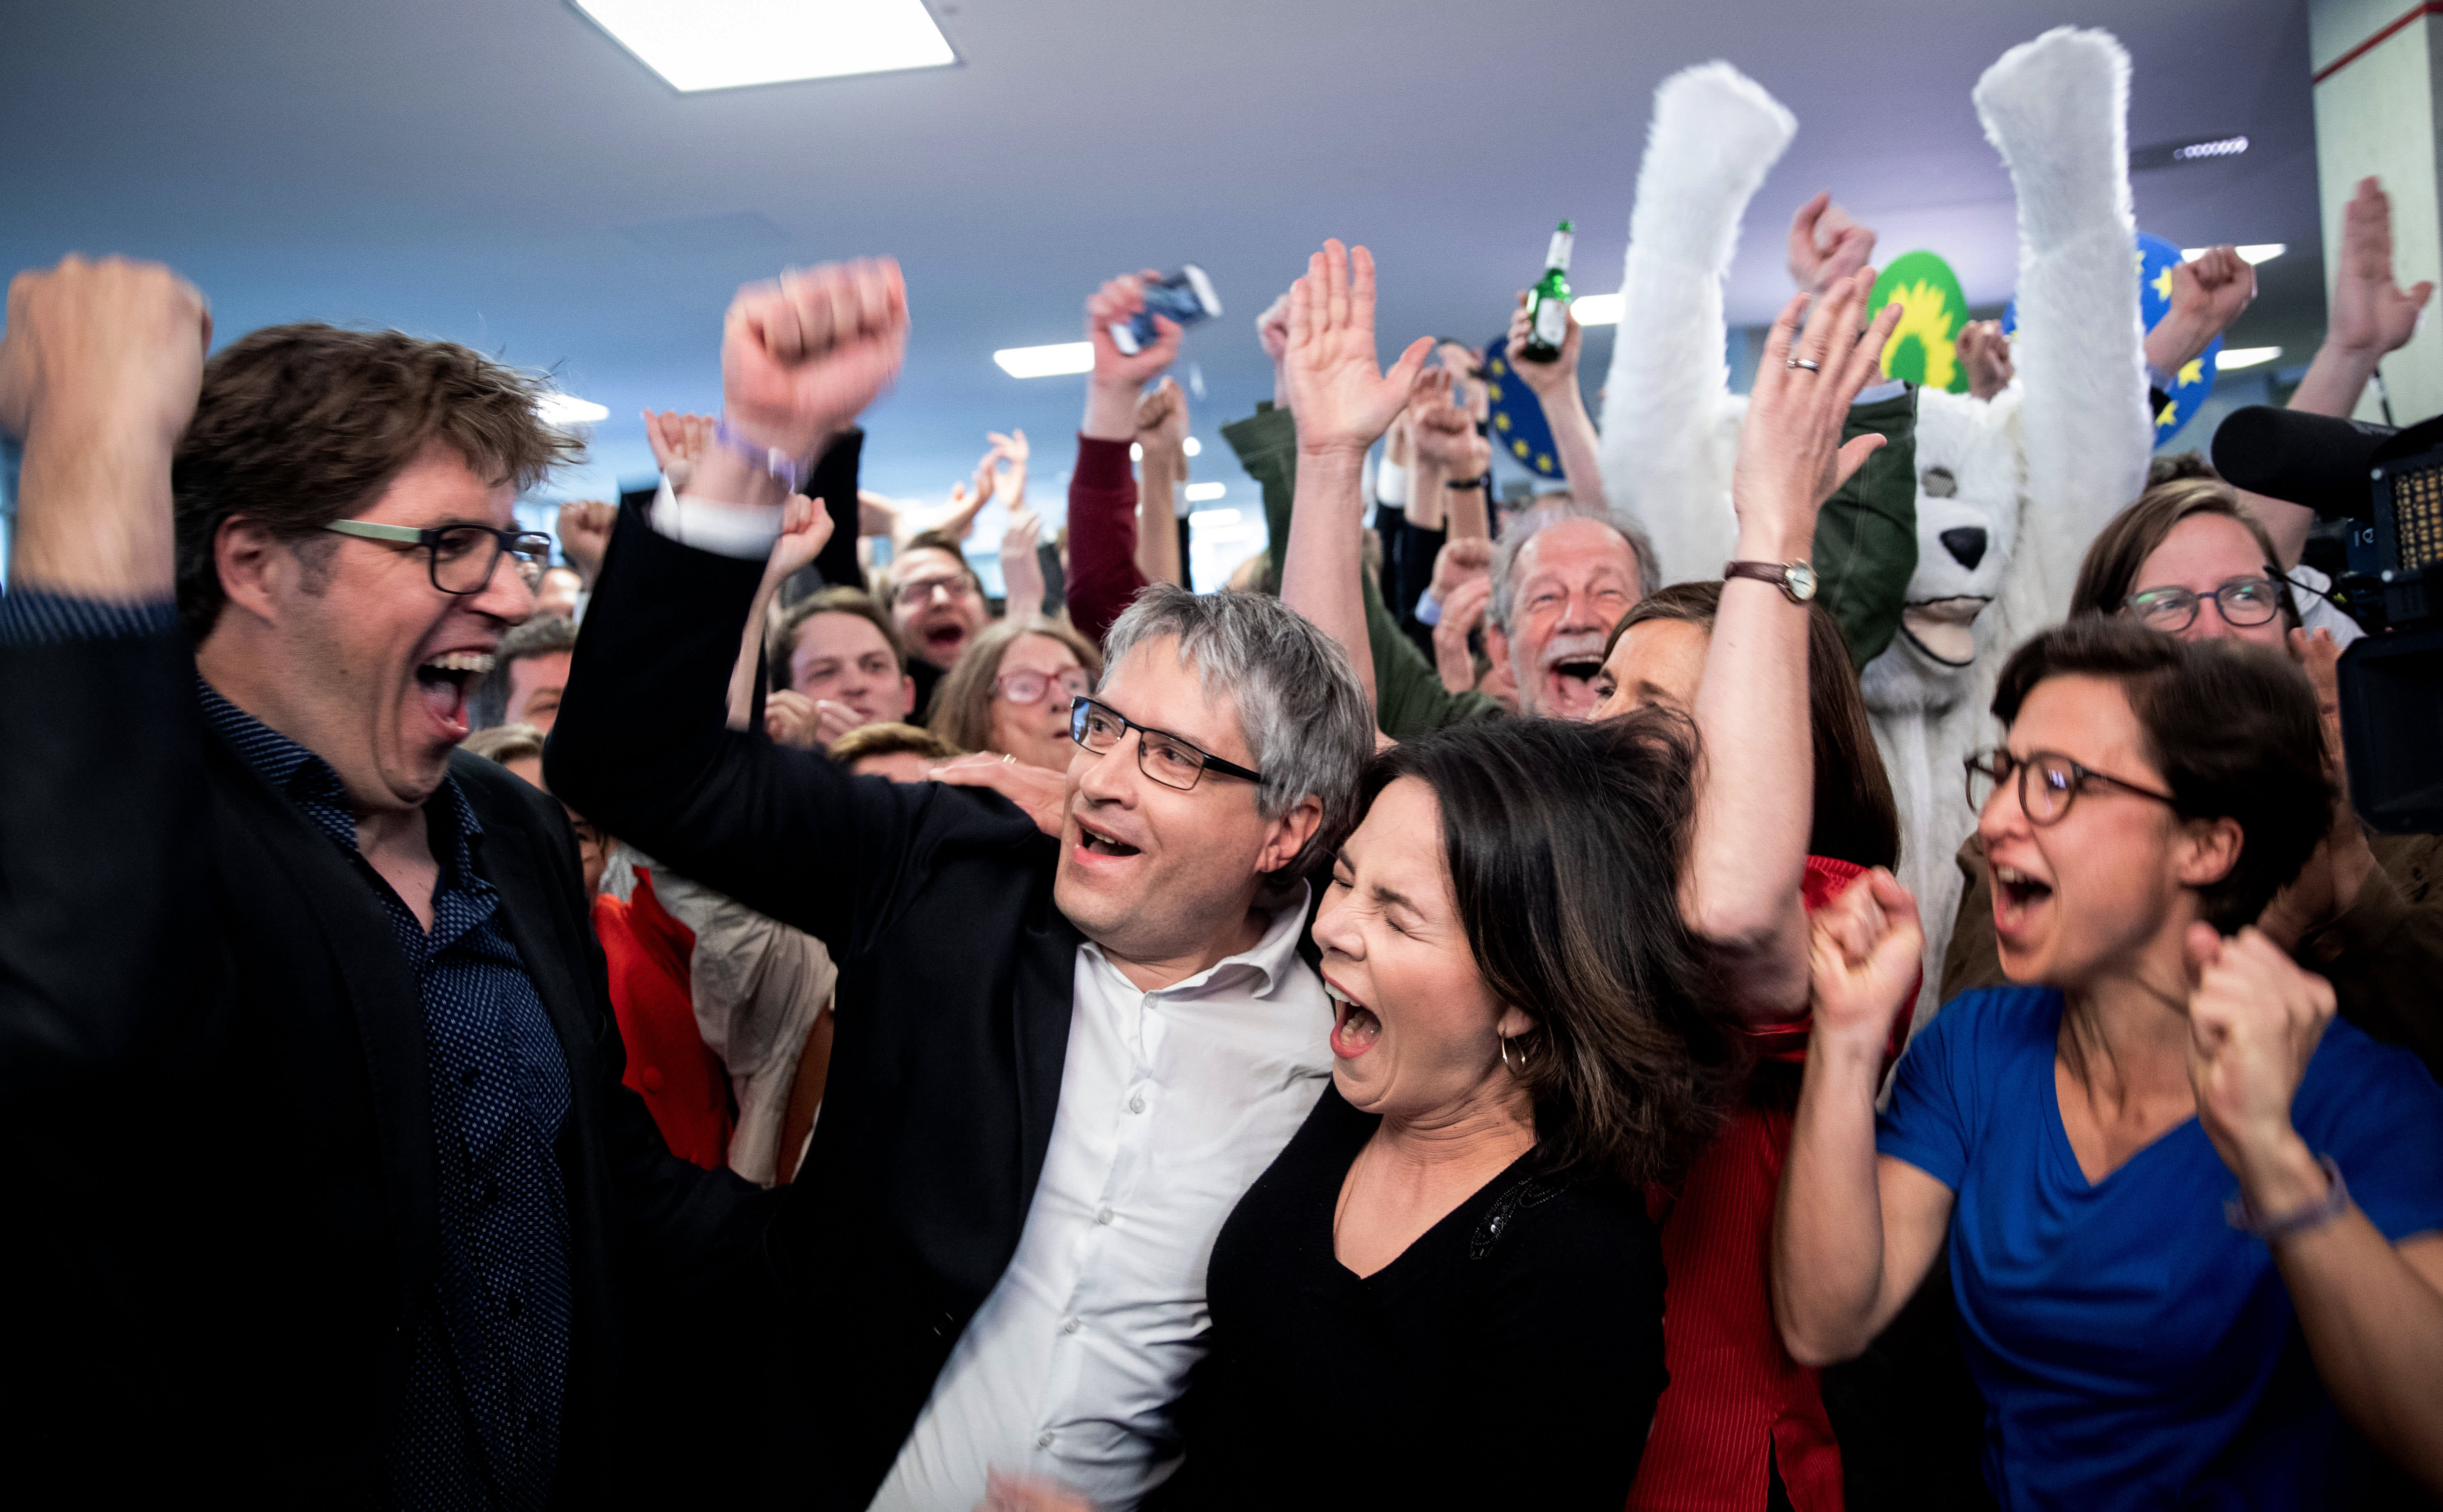 Berlin: Michael Kellner (l-r), Federal Director of the Greens, Sven Giegold, Member of the European Parliament for the Greens, Annalena Baerbock, Chairwoman of the Greens, and Hannah Neumann, candidate for the European elections, rejoice after the announcement of the first forecast for the European elections.